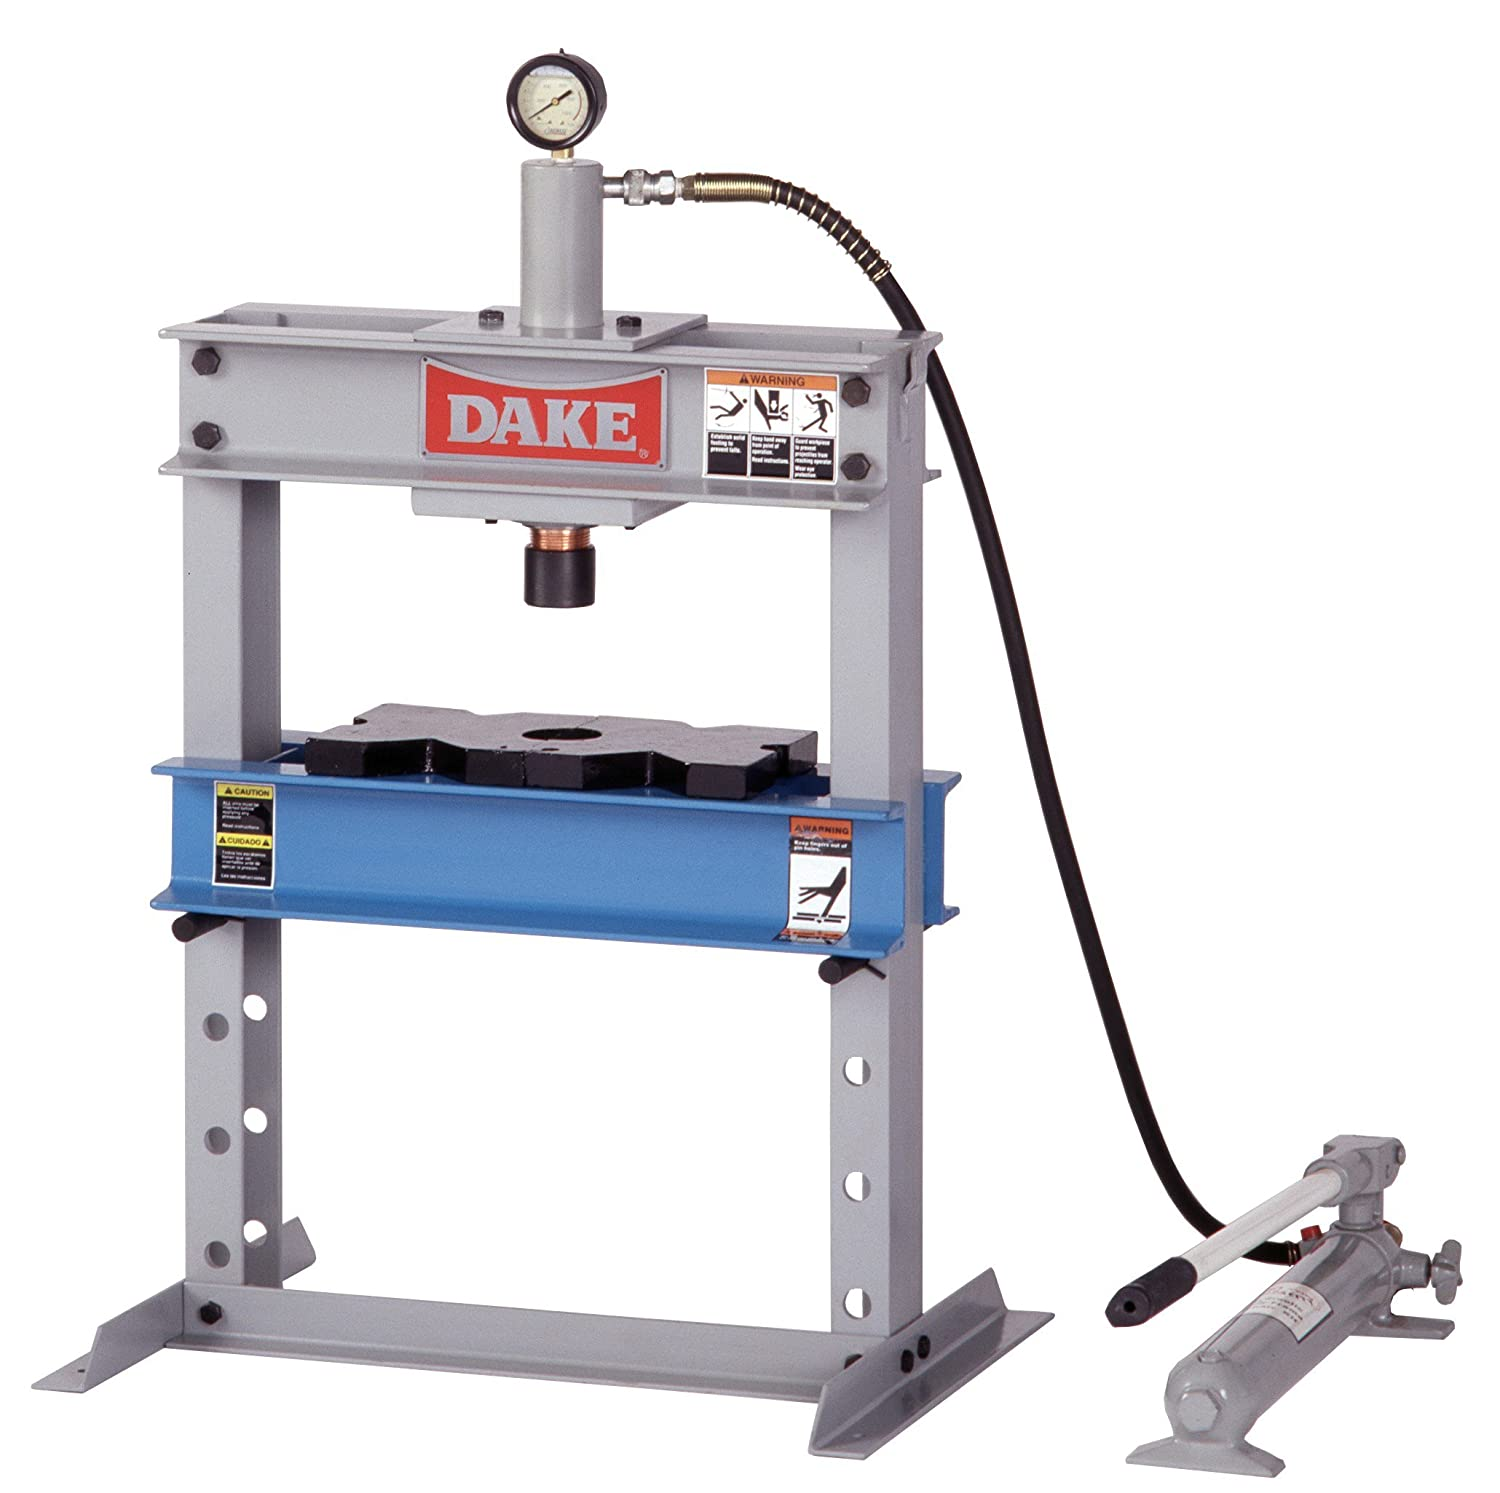 dake b 10 model manual utility hydraulic bench press 10 ton dake b 10 model manual utility hydraulic bench press 10 ton capacity 23 length x 18 width x 36 height drill presses amazon com industrial